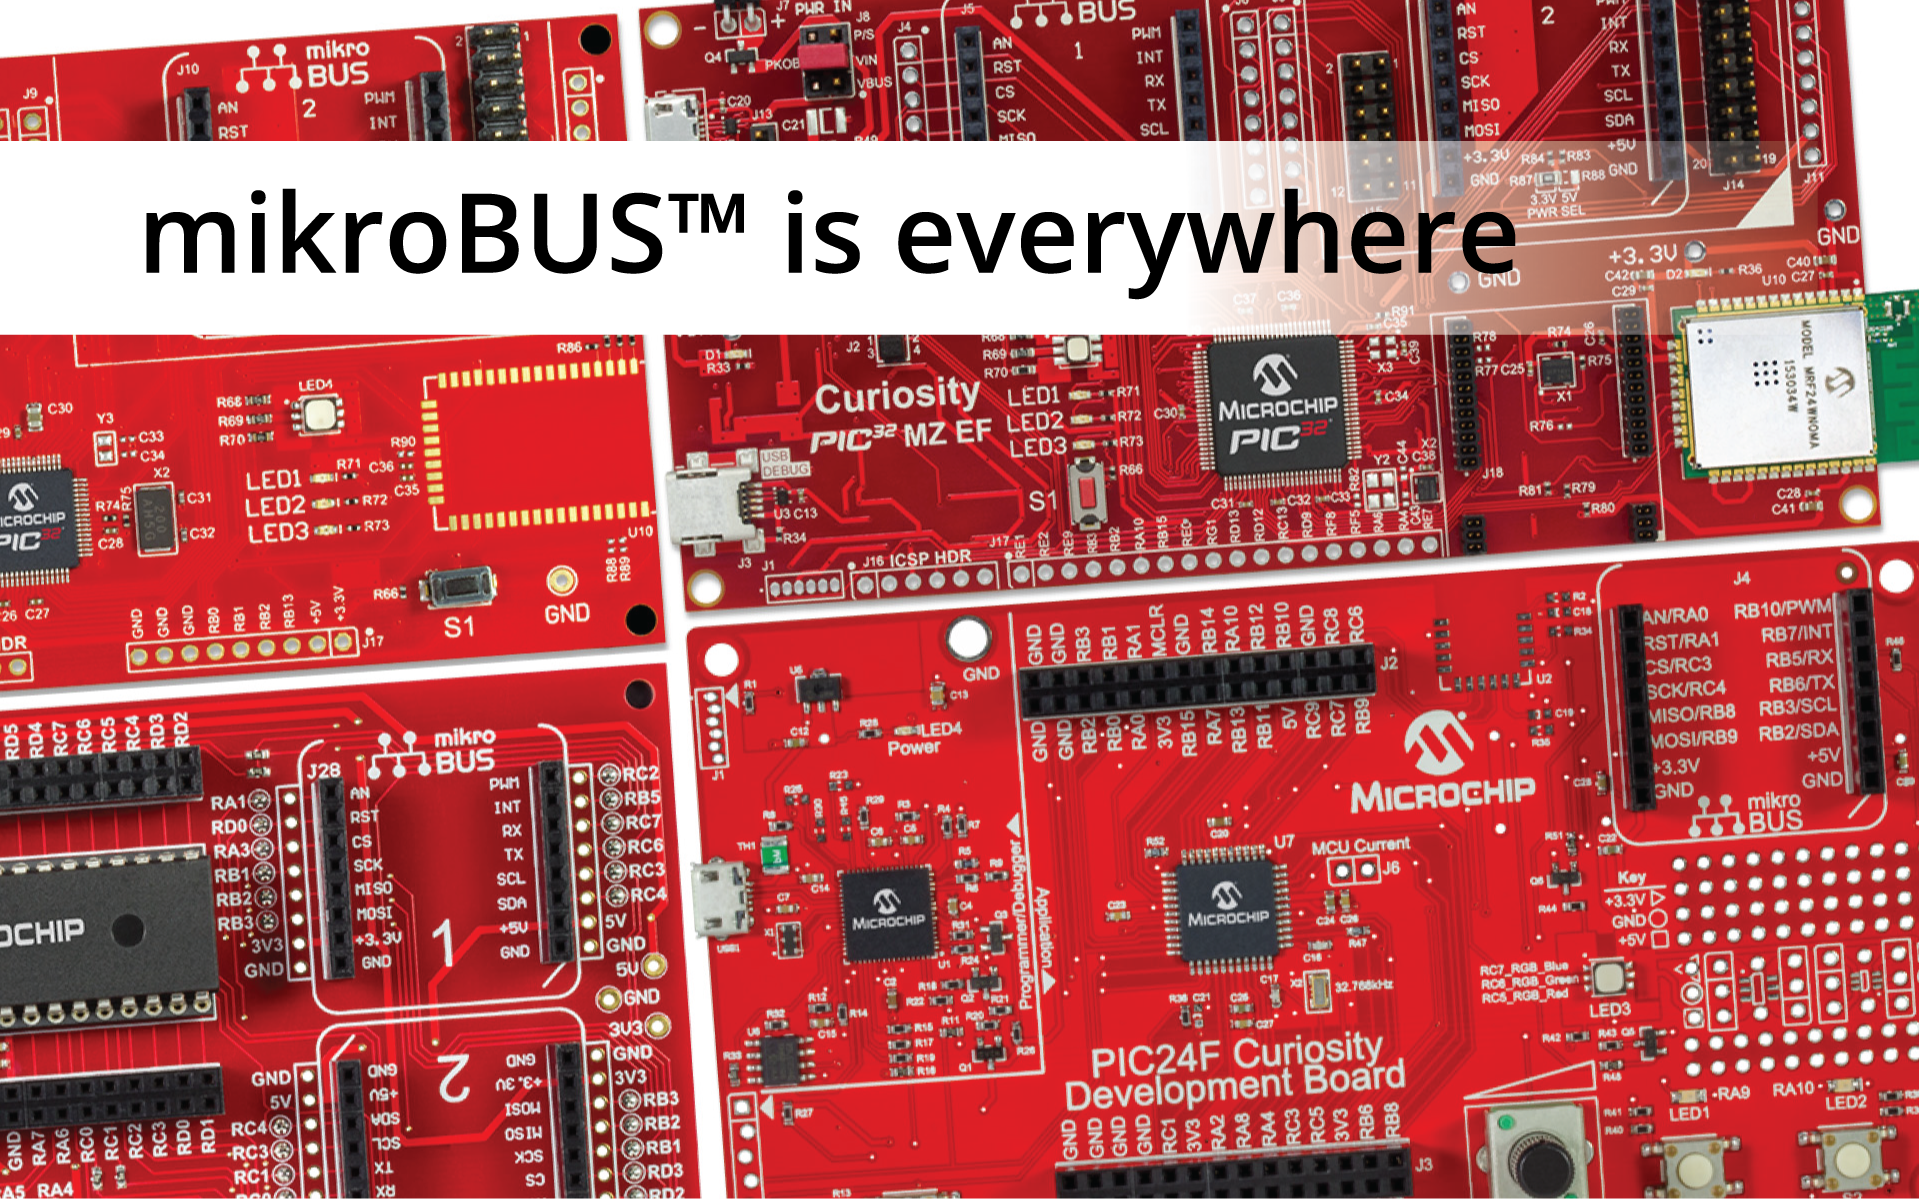 mikroBUS™ is growing and it's everywhere